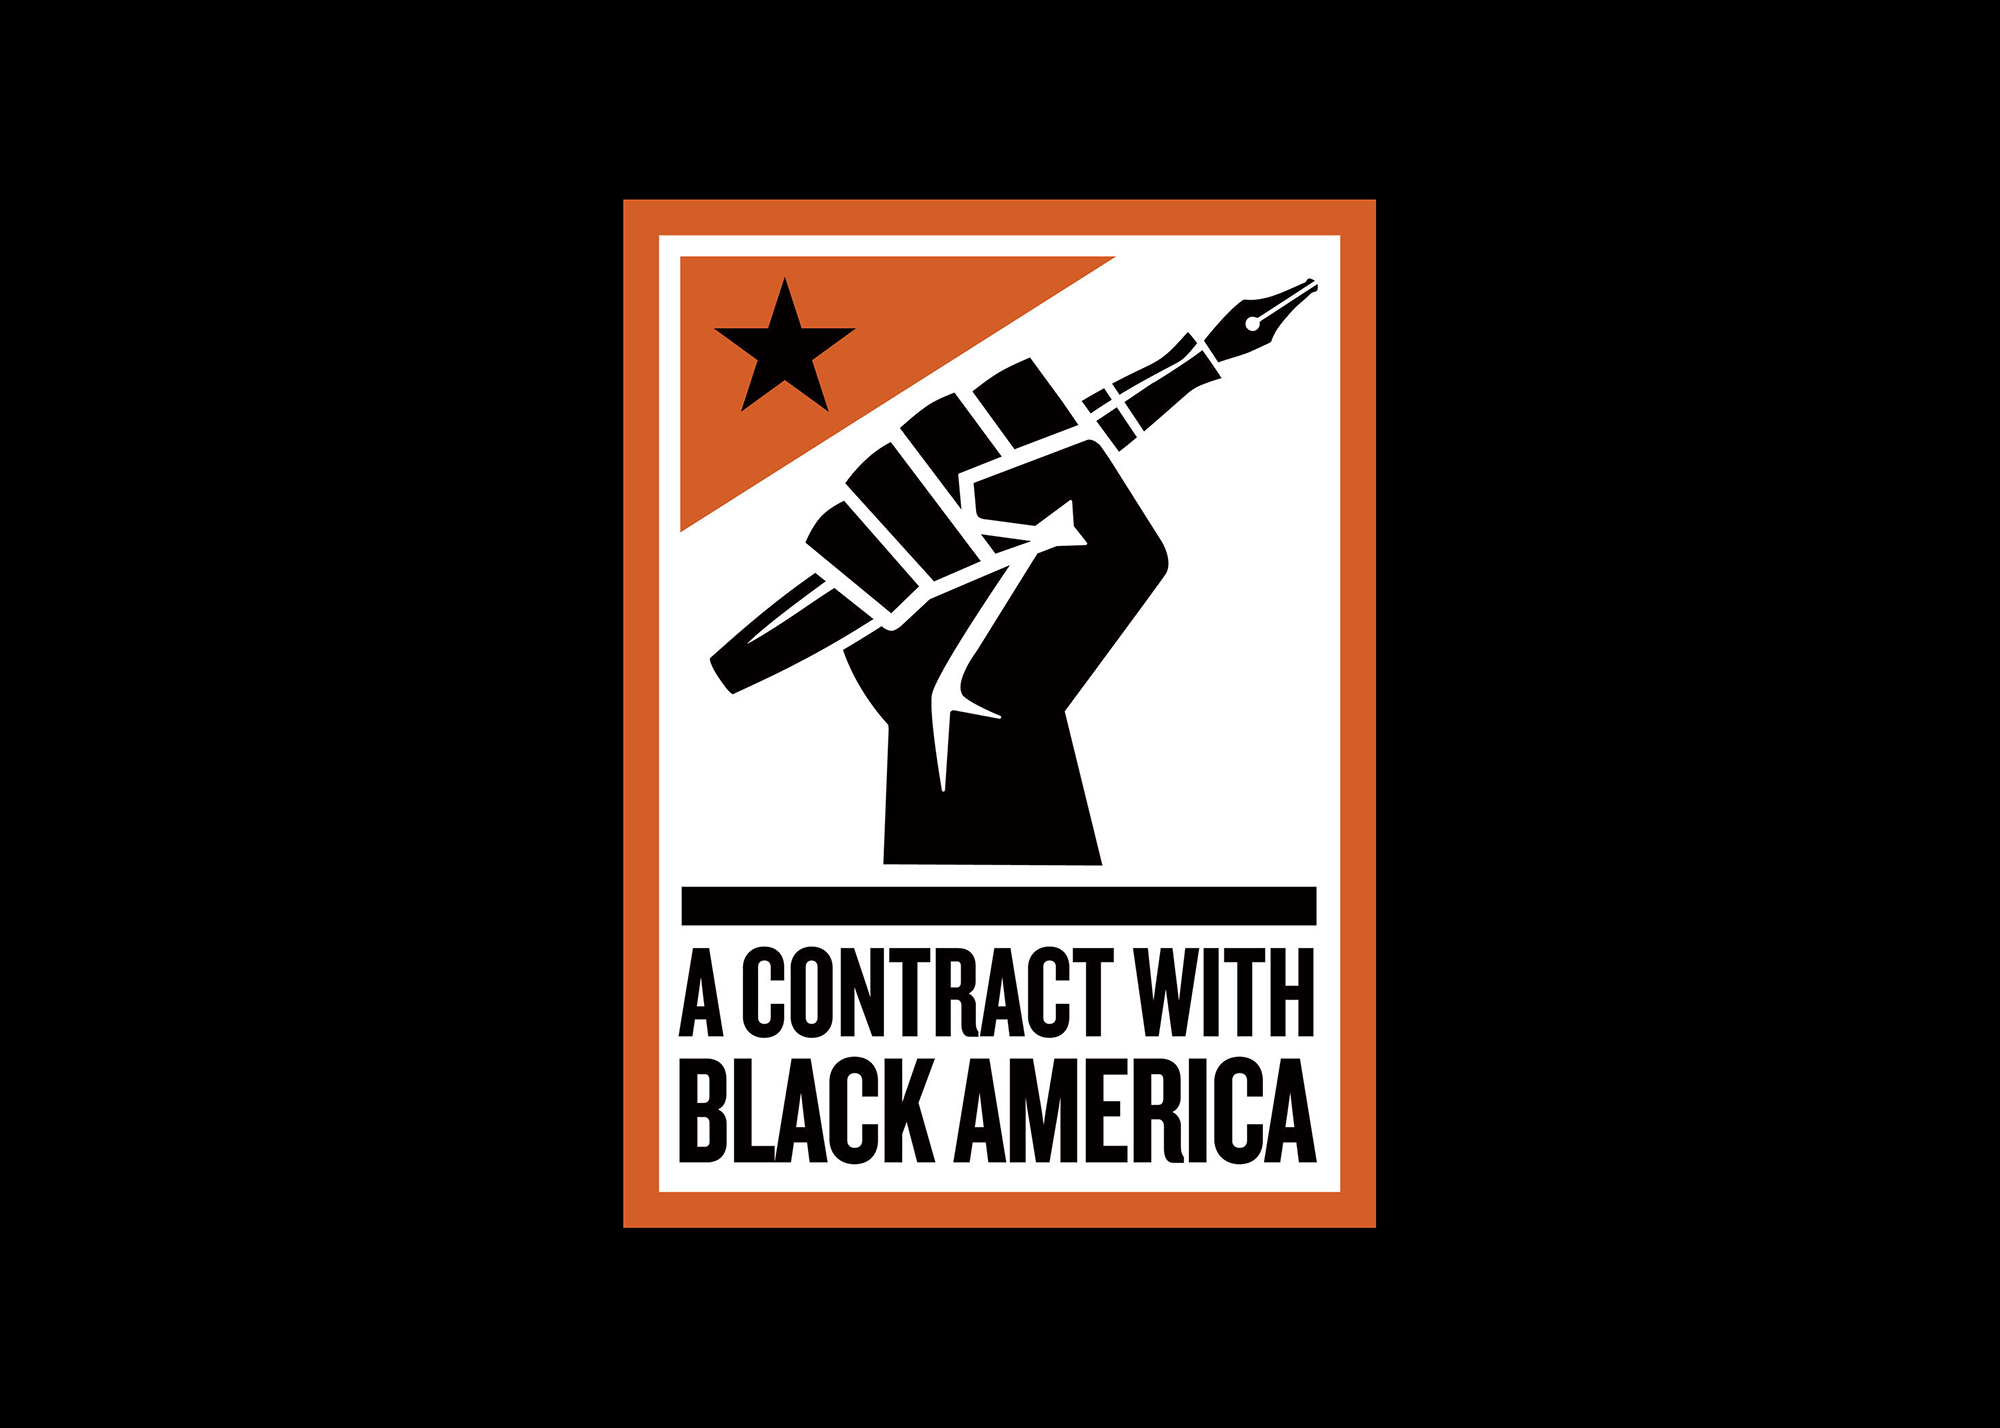 A Contract with Black America